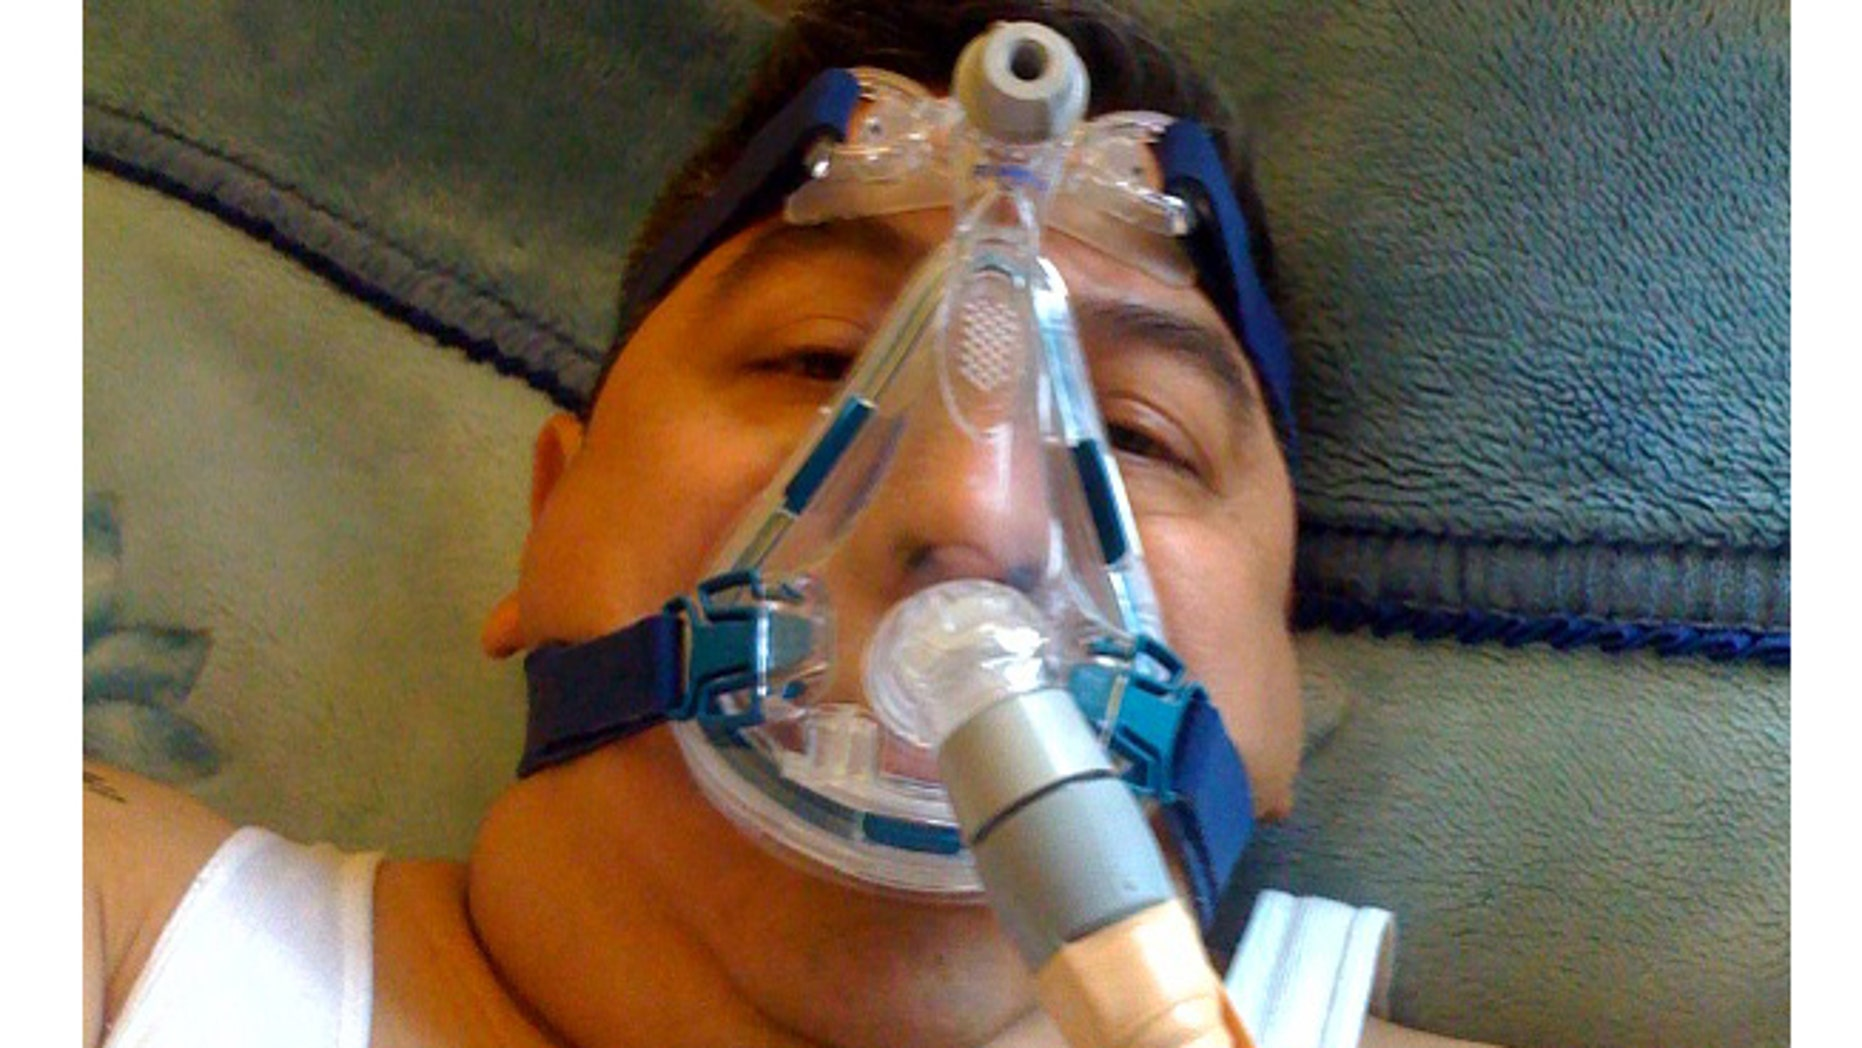 Rafael Hernández says that he must sleep hooked up to a respirator because of toxic dust he inhaled during several months of work at Ground Zero, where the Mexico native helped search for survivors and remains after the Sept. 11 attacks.